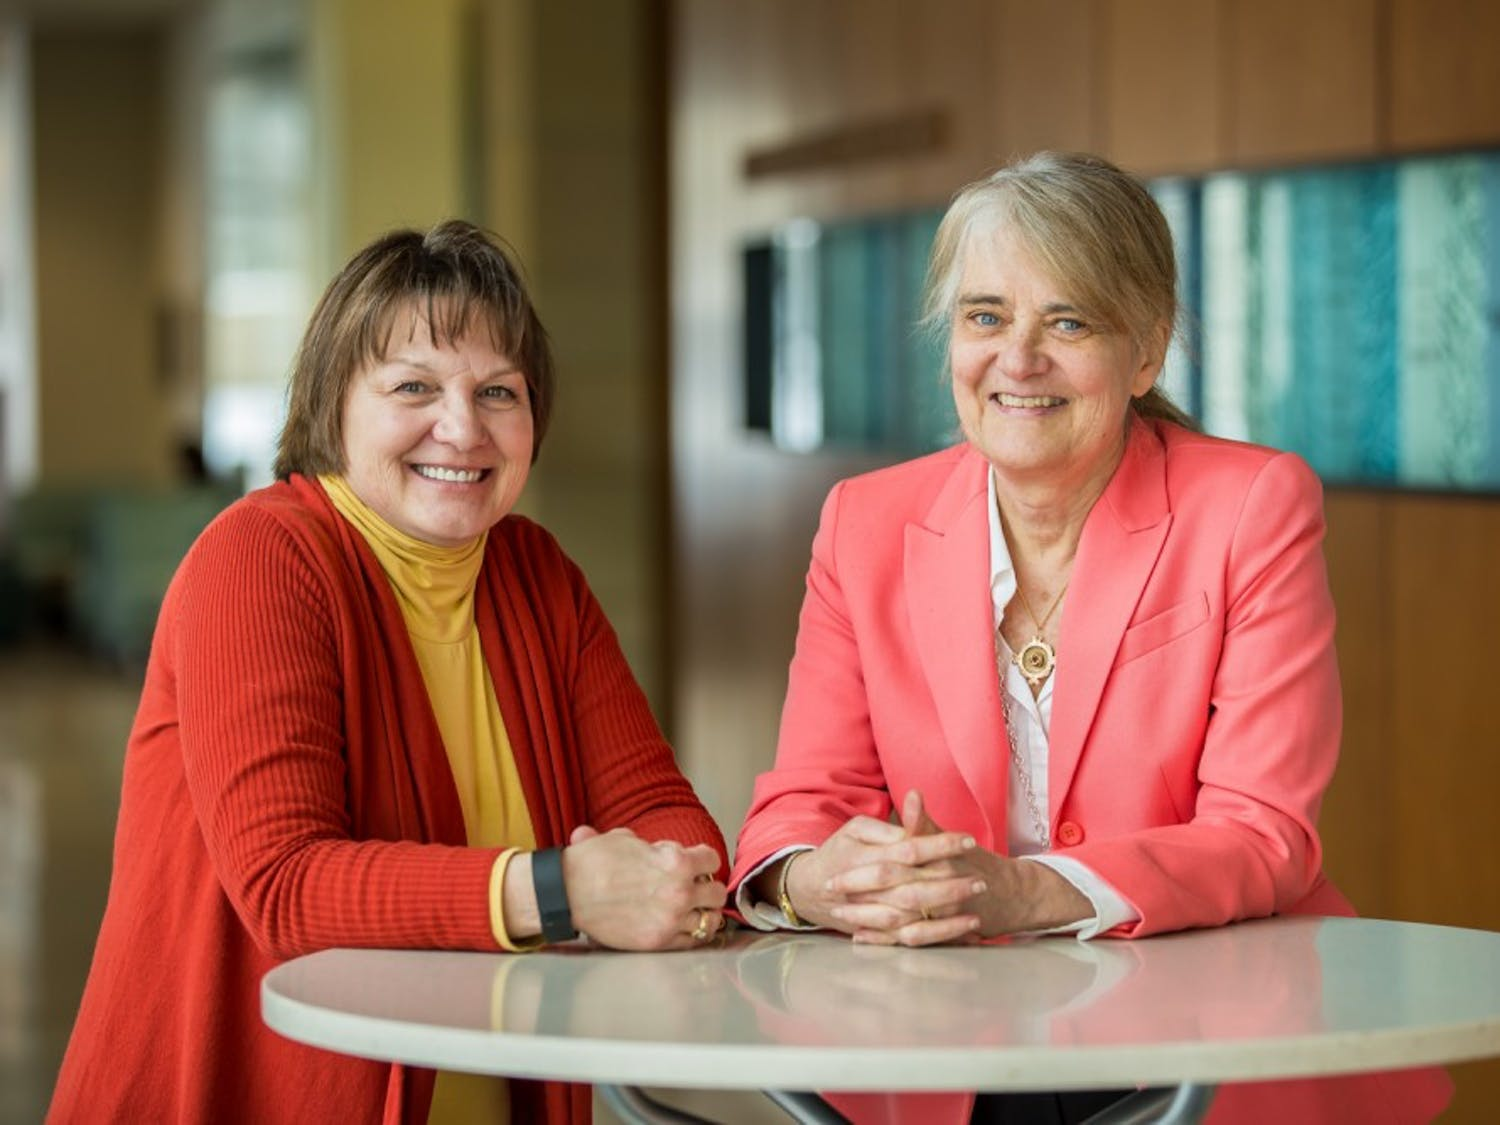 Barbara Bowers (right) and Barbara King, faculty members of the UW-Madison School of Nursing, recently received national awards for their research advancing health care for the elderly.